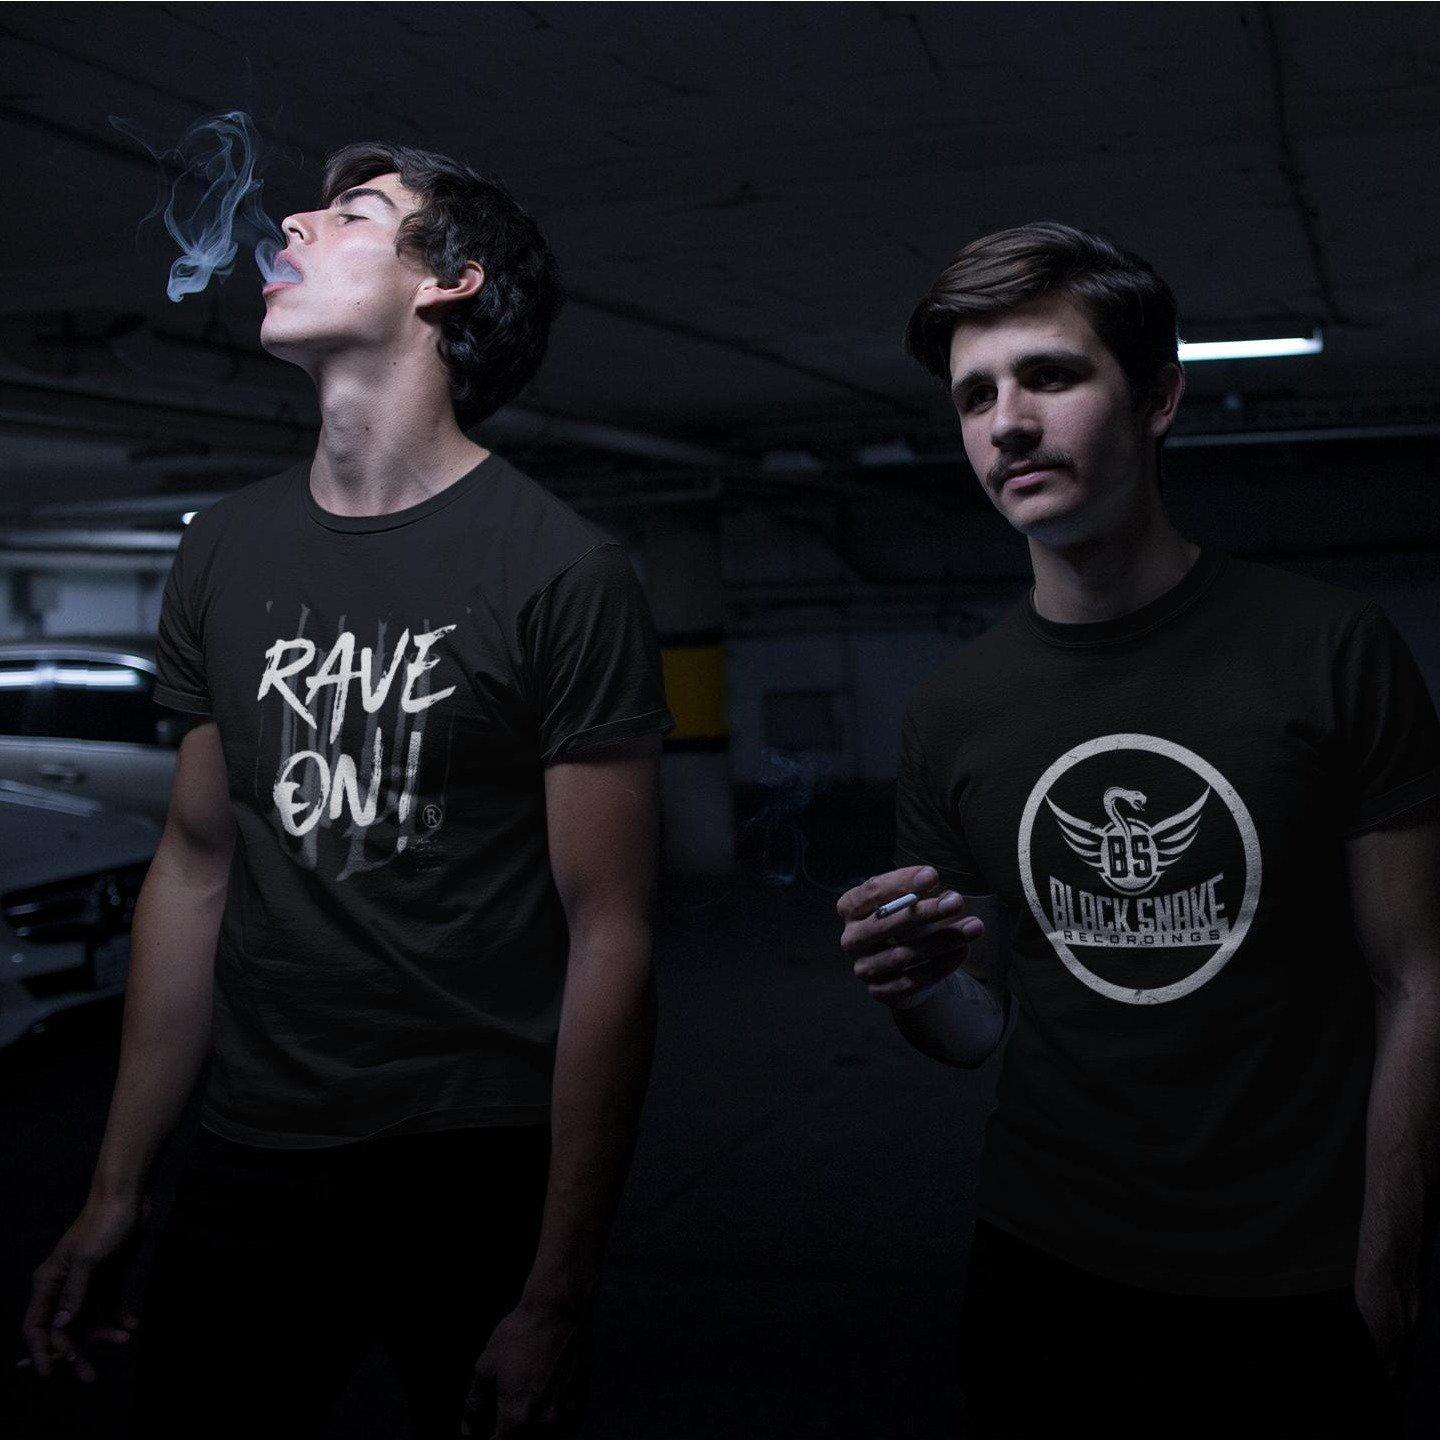 Rave On!® - Made On Planet Earth B2k20 - Herren Premiumshirt Herren Premium Shirt - Rave On!® der Club & Techno Szene Shop für Coole Junge Mode Streetwear Style & Fashion Outfits + Sexy Festival 420 Stuff